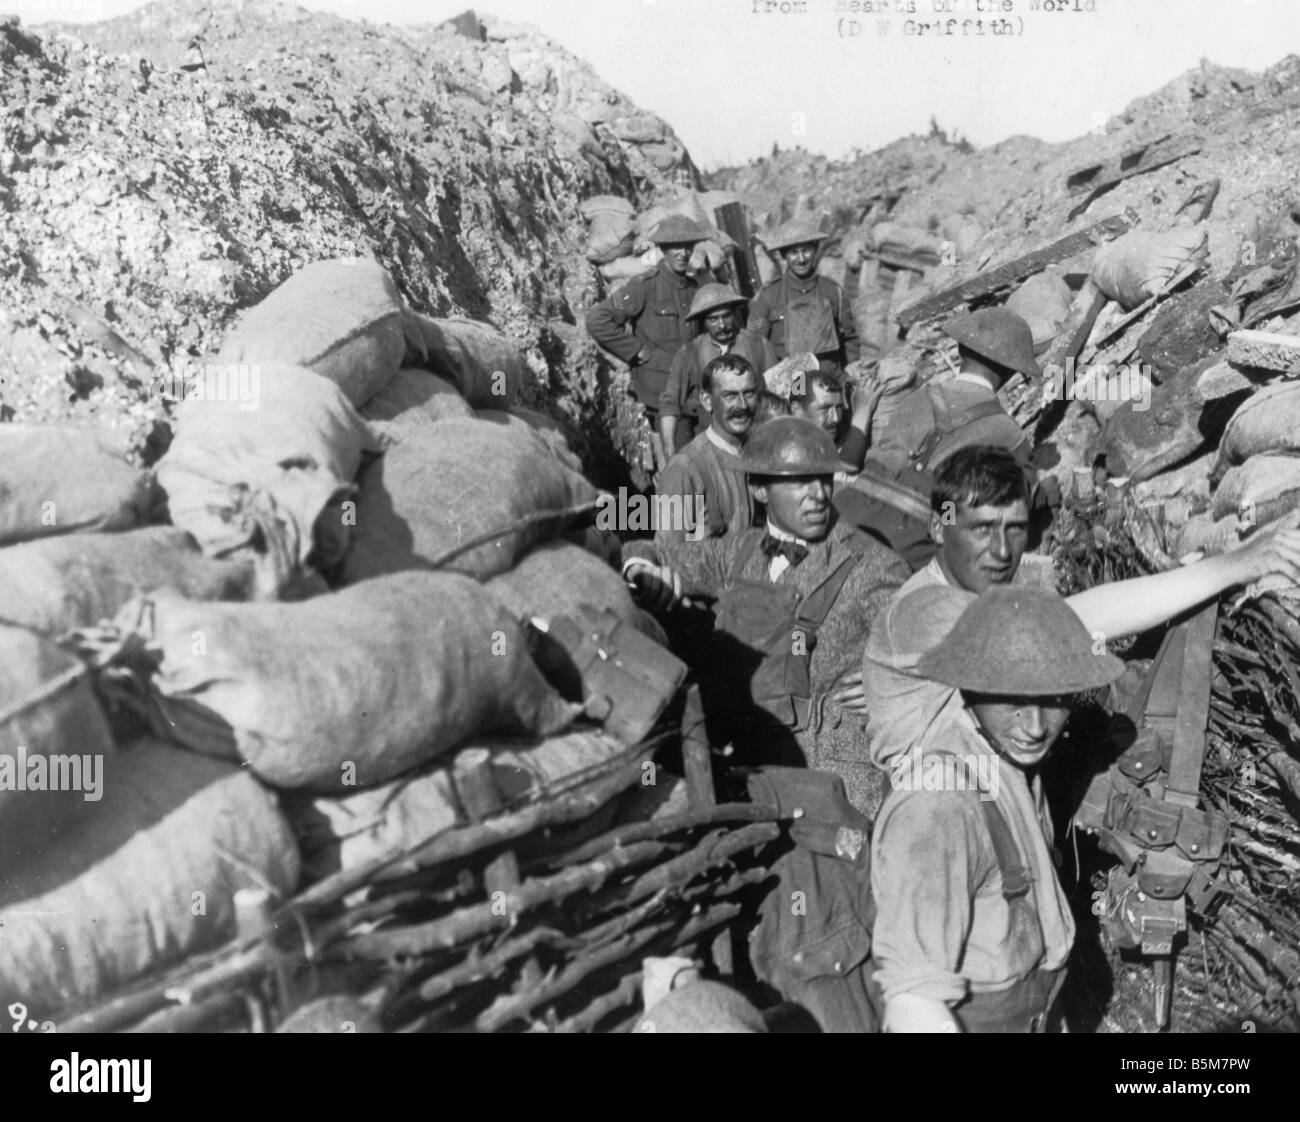 1US 780 F1917 D W Griffith on the French Front 1917 Griffith David Wark US American film director 1875 1948 D W - Stock Image